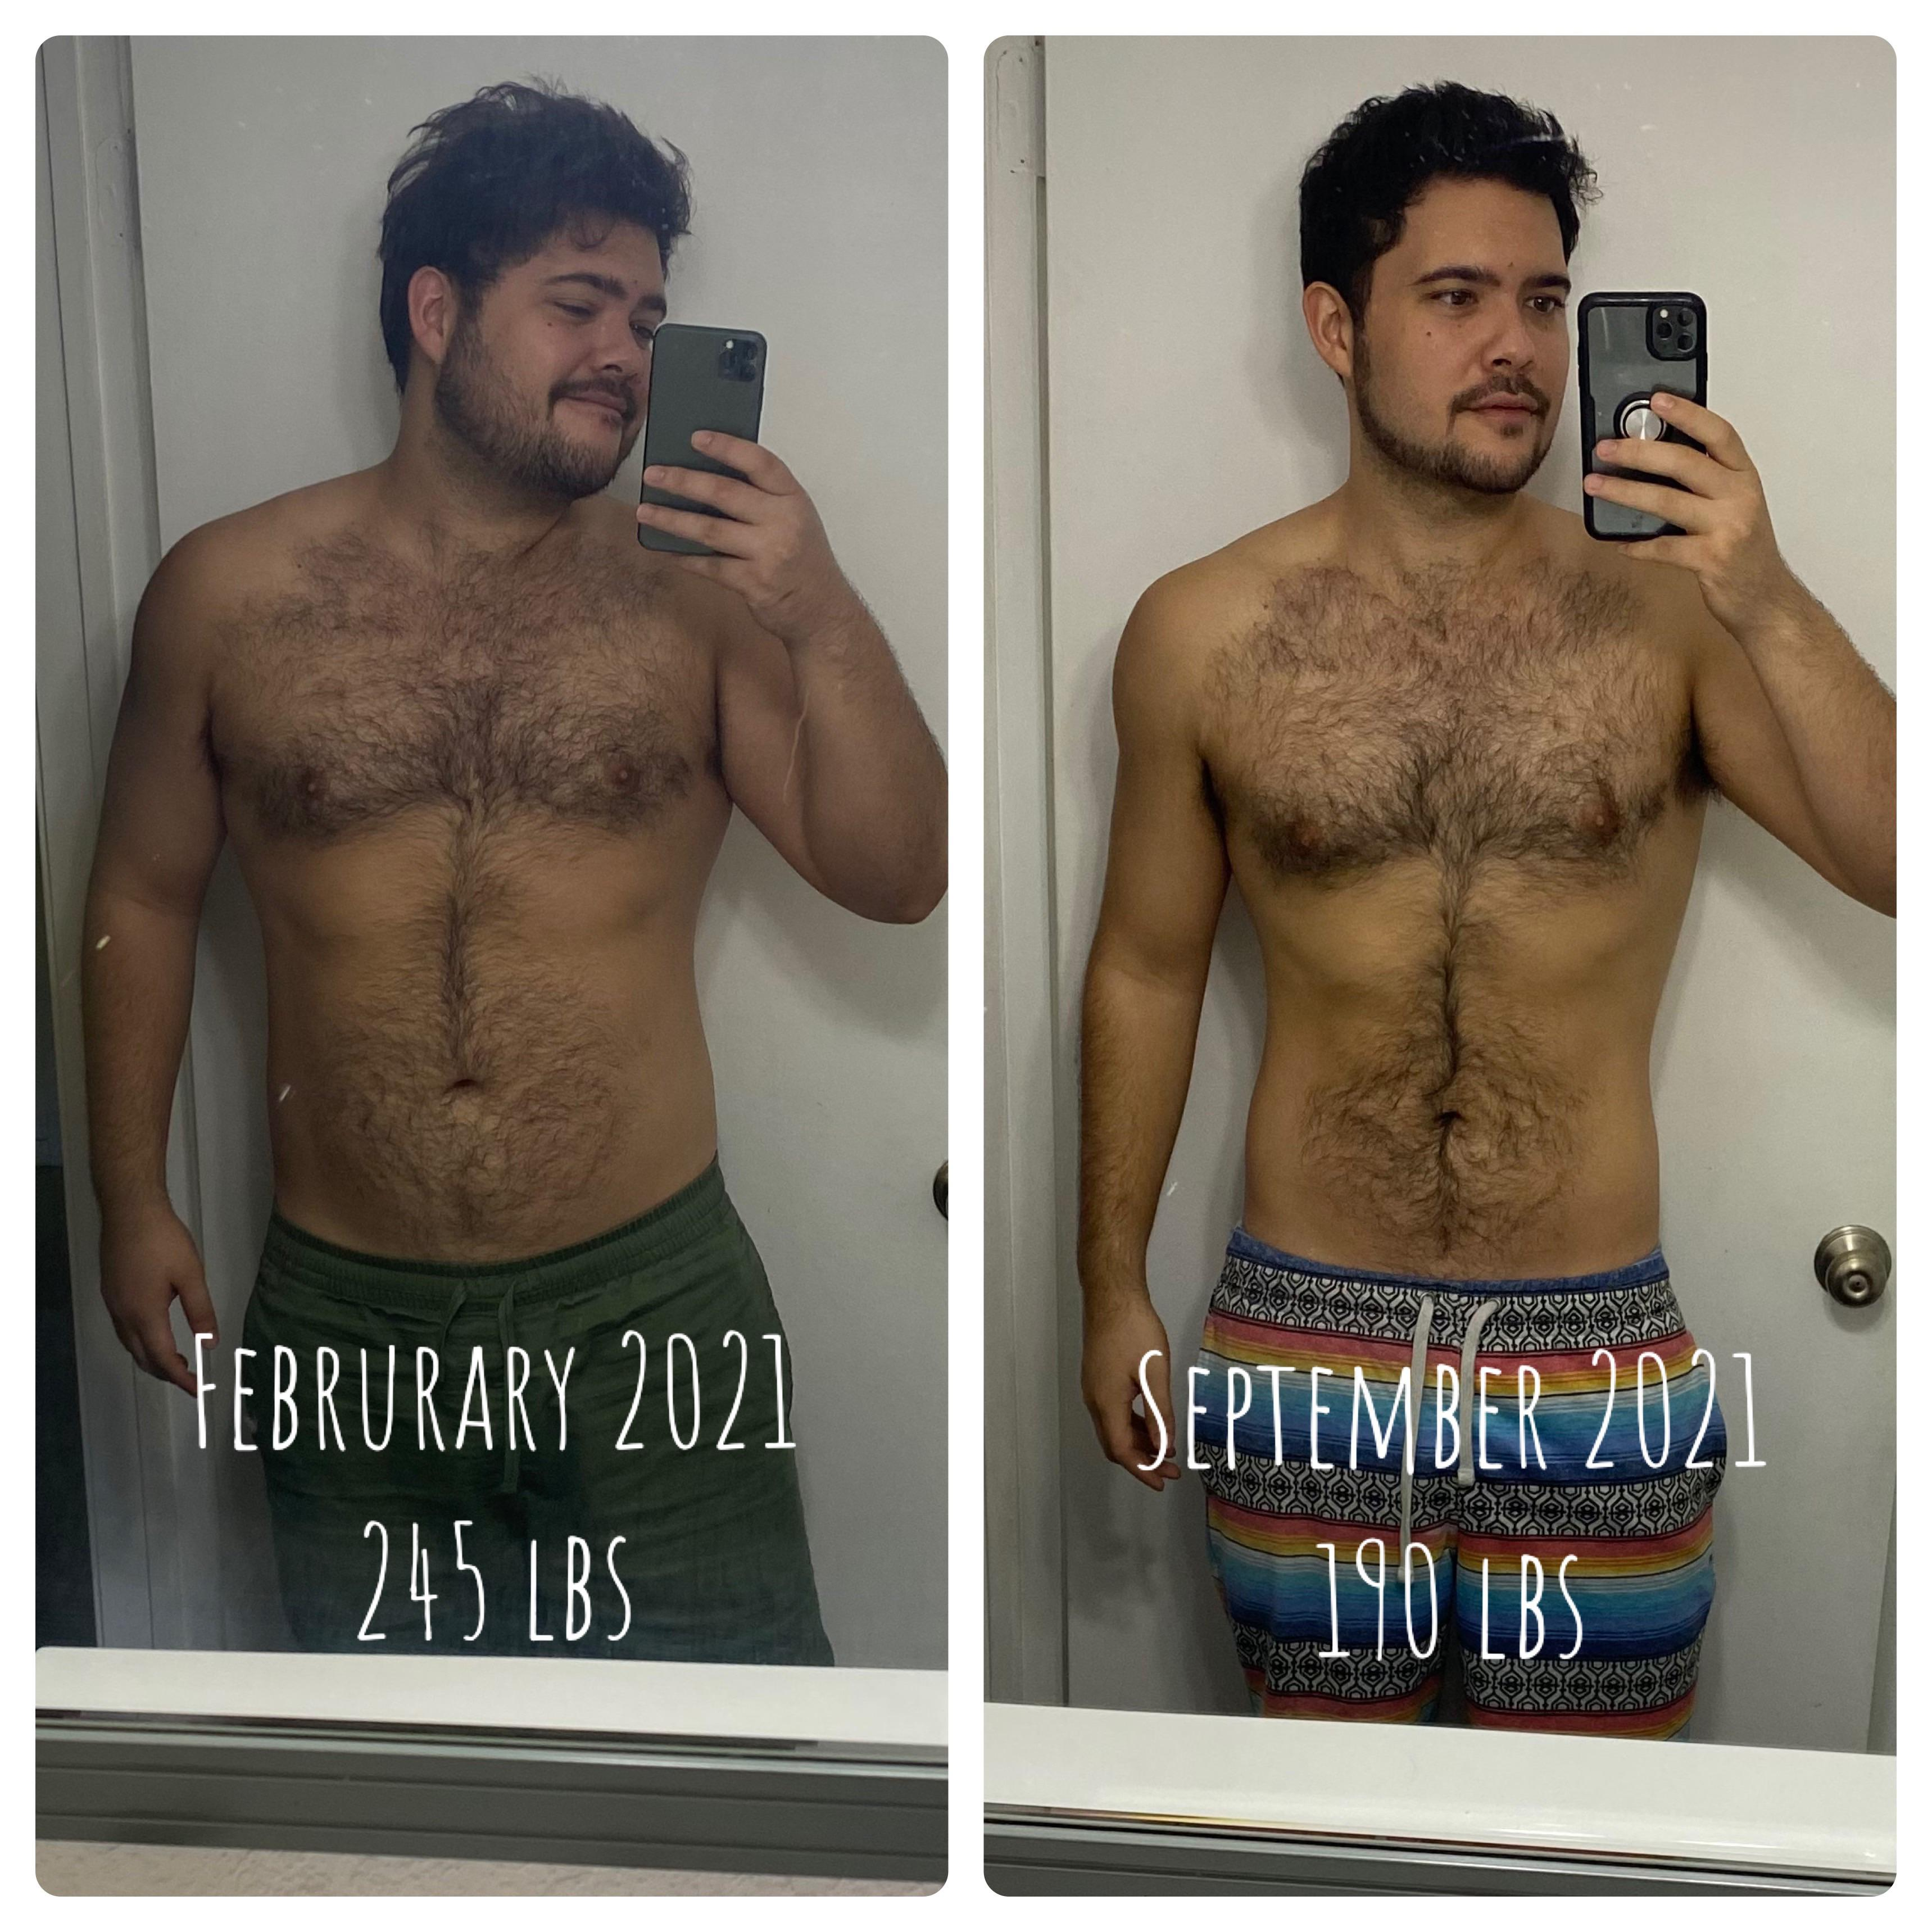 6 foot Male Before and After 55 lbs Fat Loss 245 lbs to 190 lbs